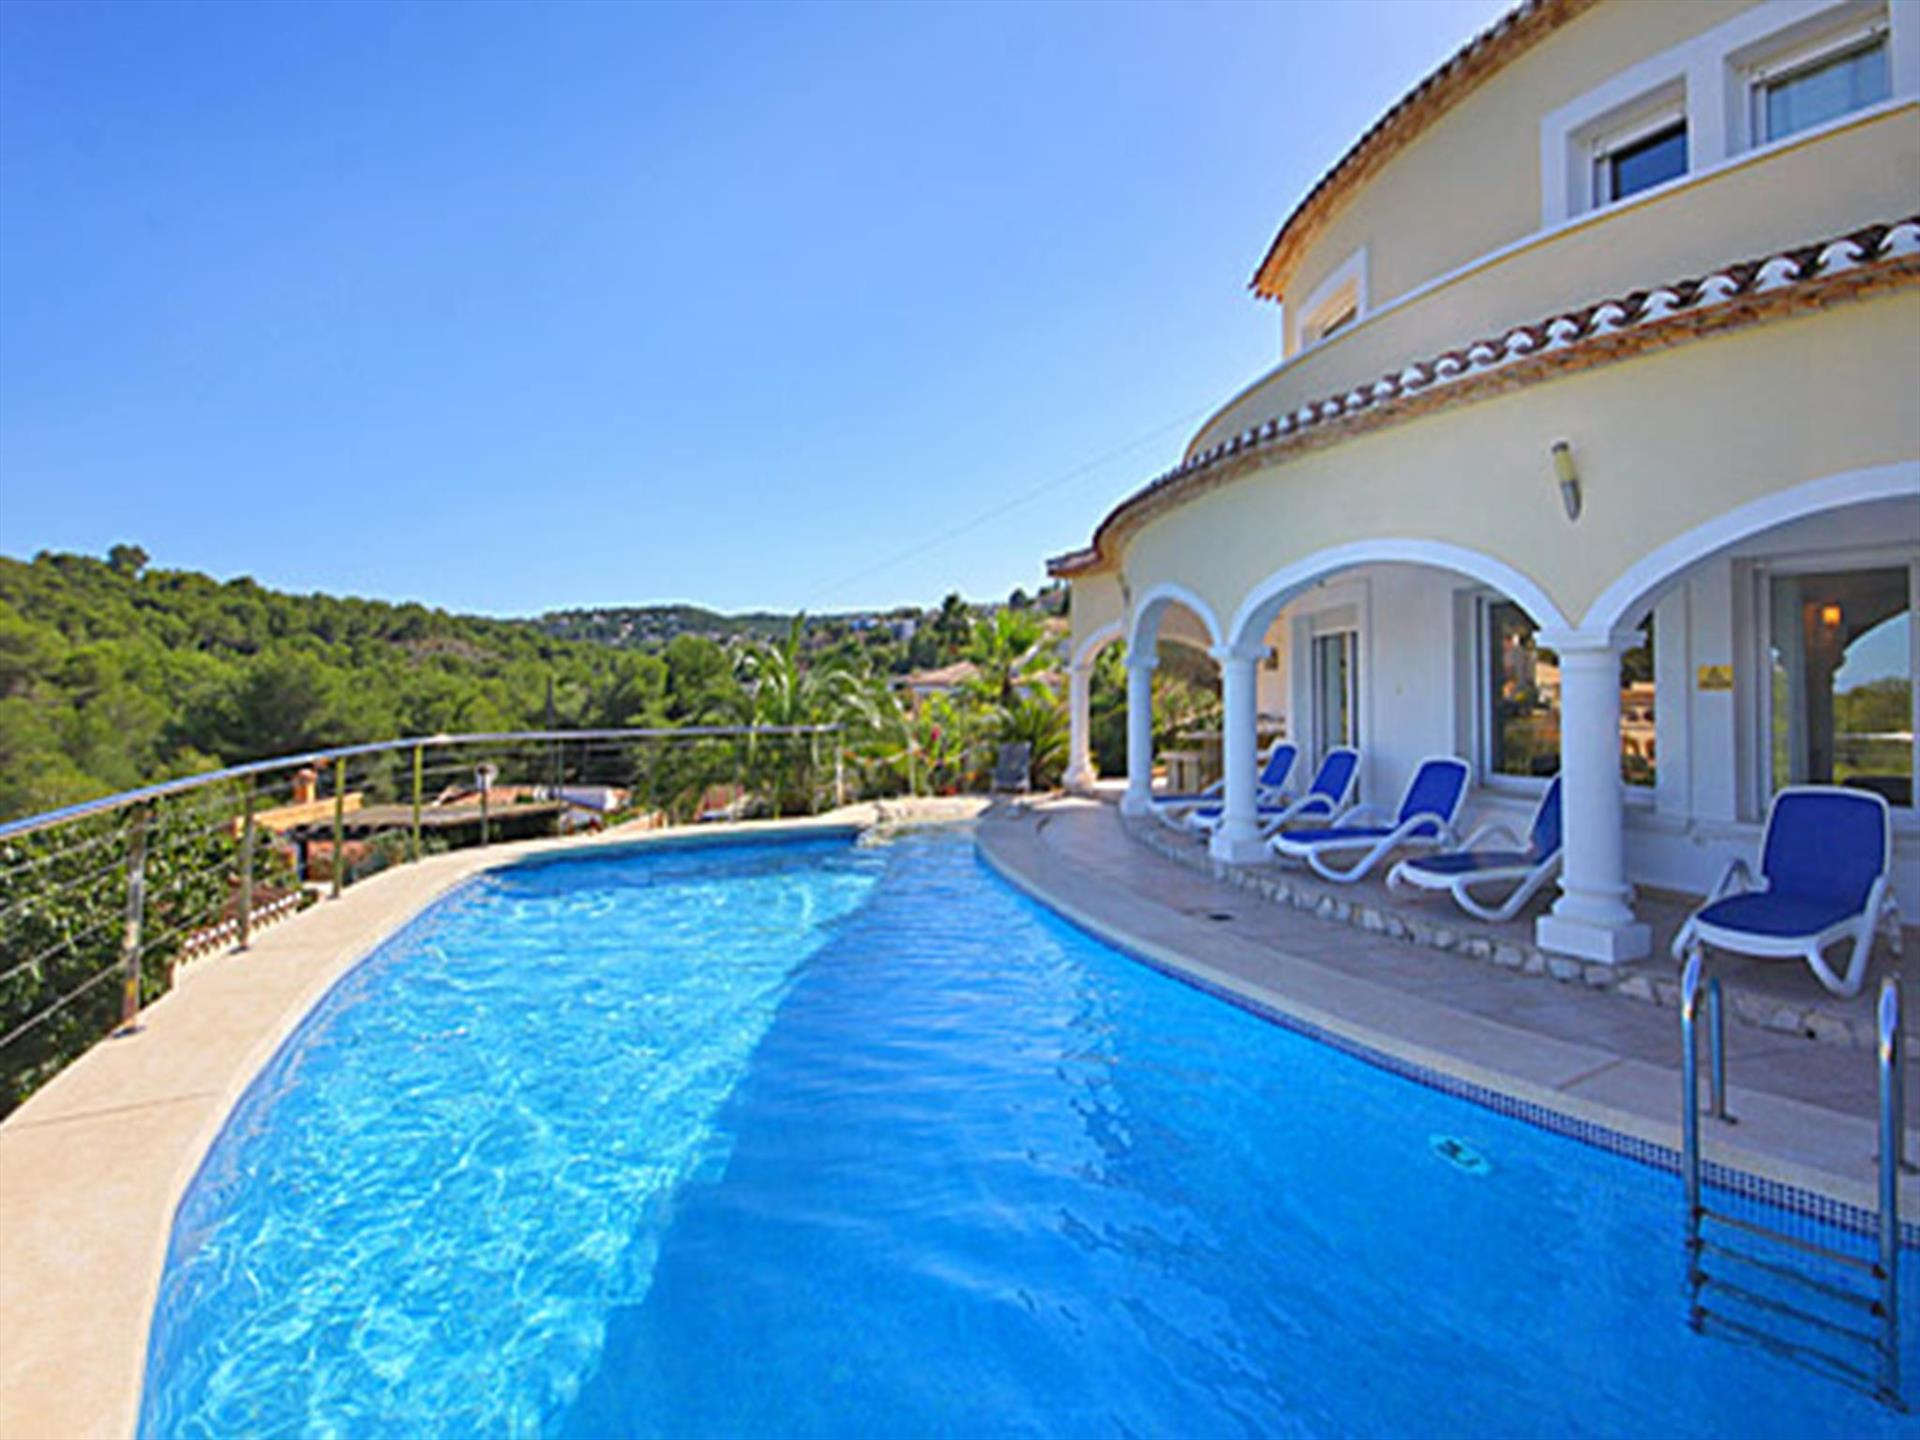 Villa Jarmila 4 pax, Beautiful and comfortable villa in Javea, on the Costa Blanca, Spain  with private pool for 4 persons...